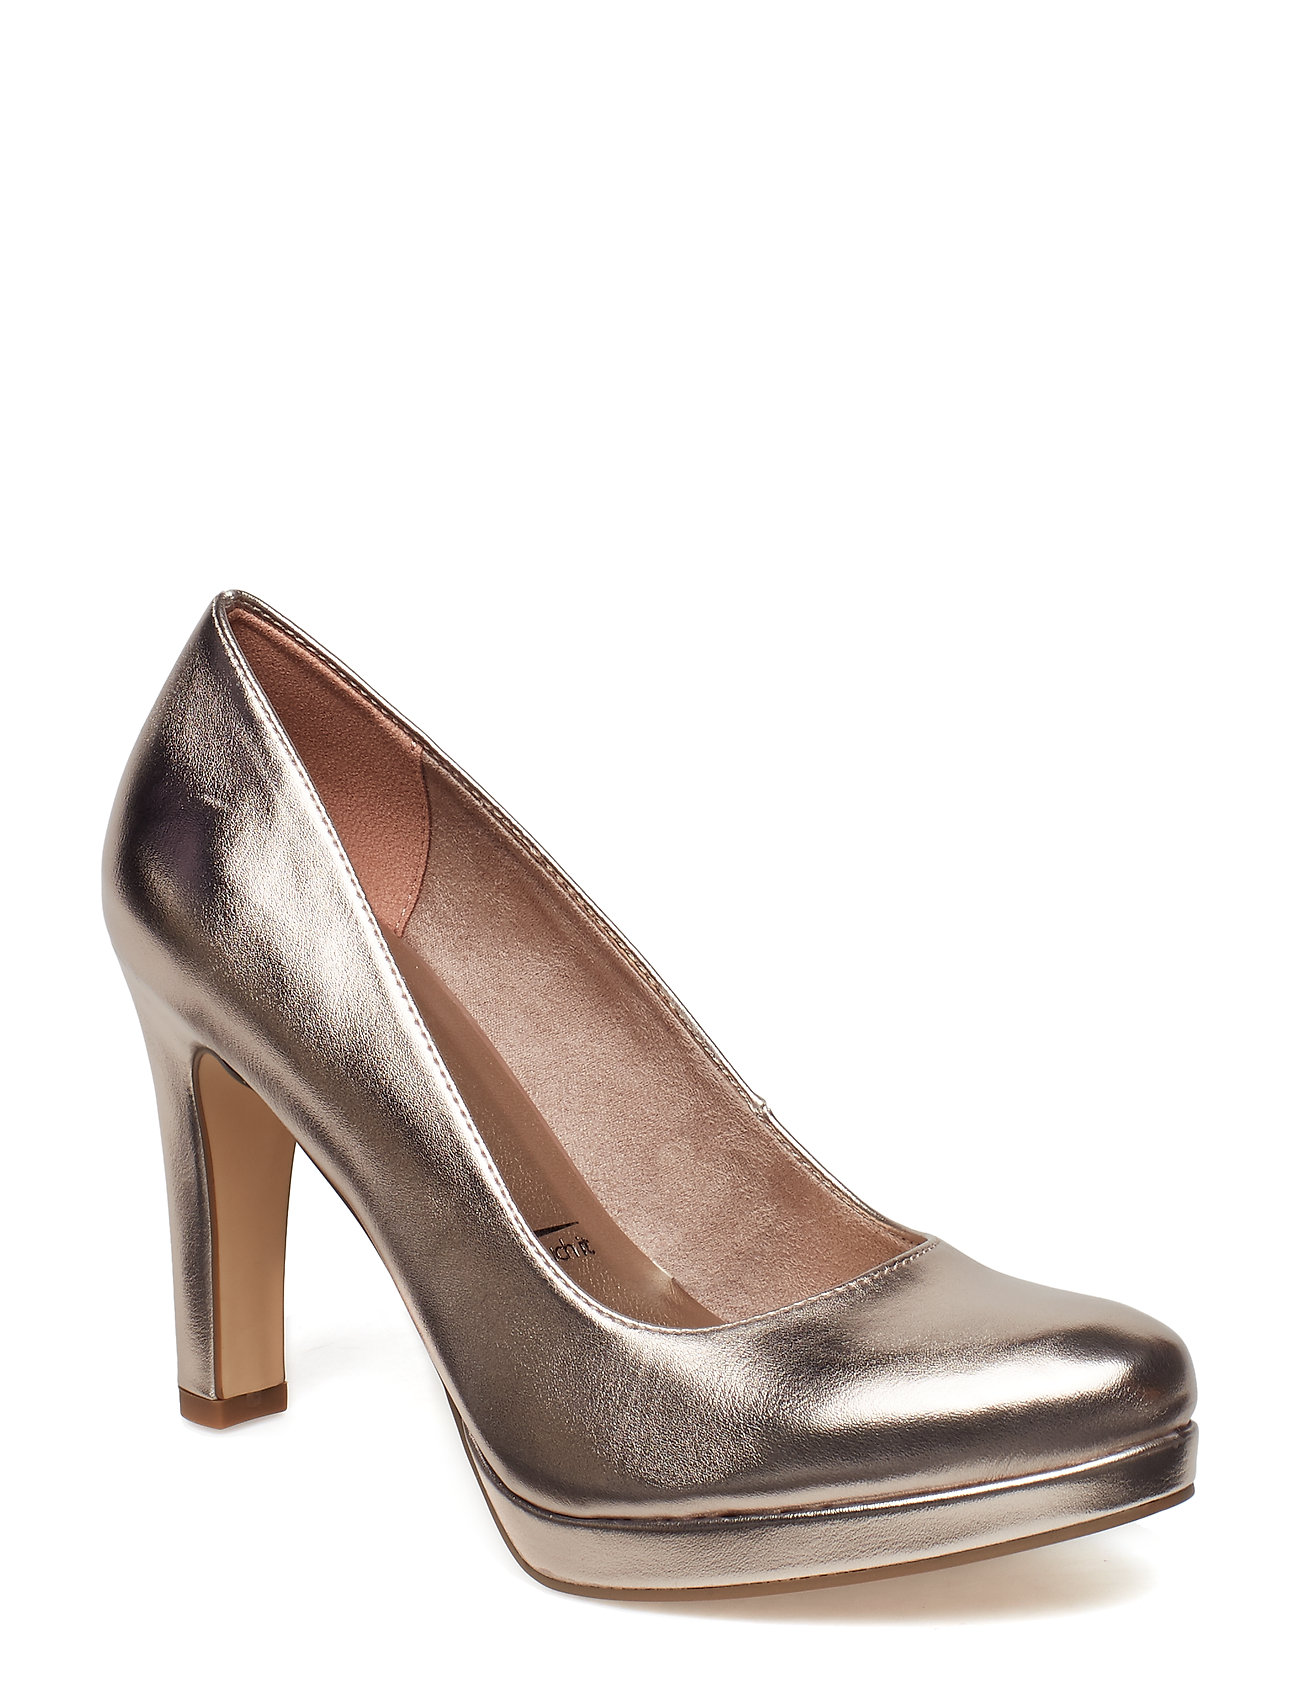 Tamaris Pumps - ROSE METALLIC